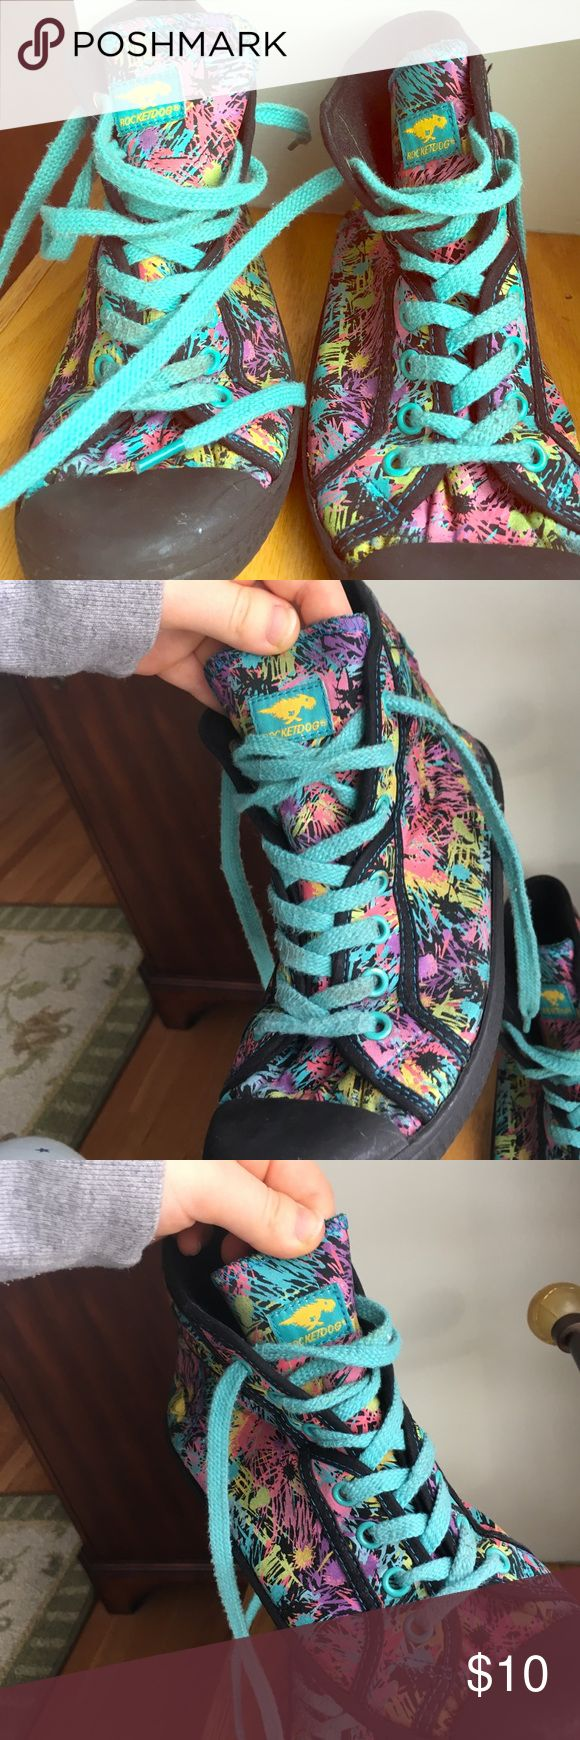 Paint Patterned High Top Rocket Dogs Paint Patterned High Top Rocket Dogs. Some wear Rocket Dog Shoes Sneakers